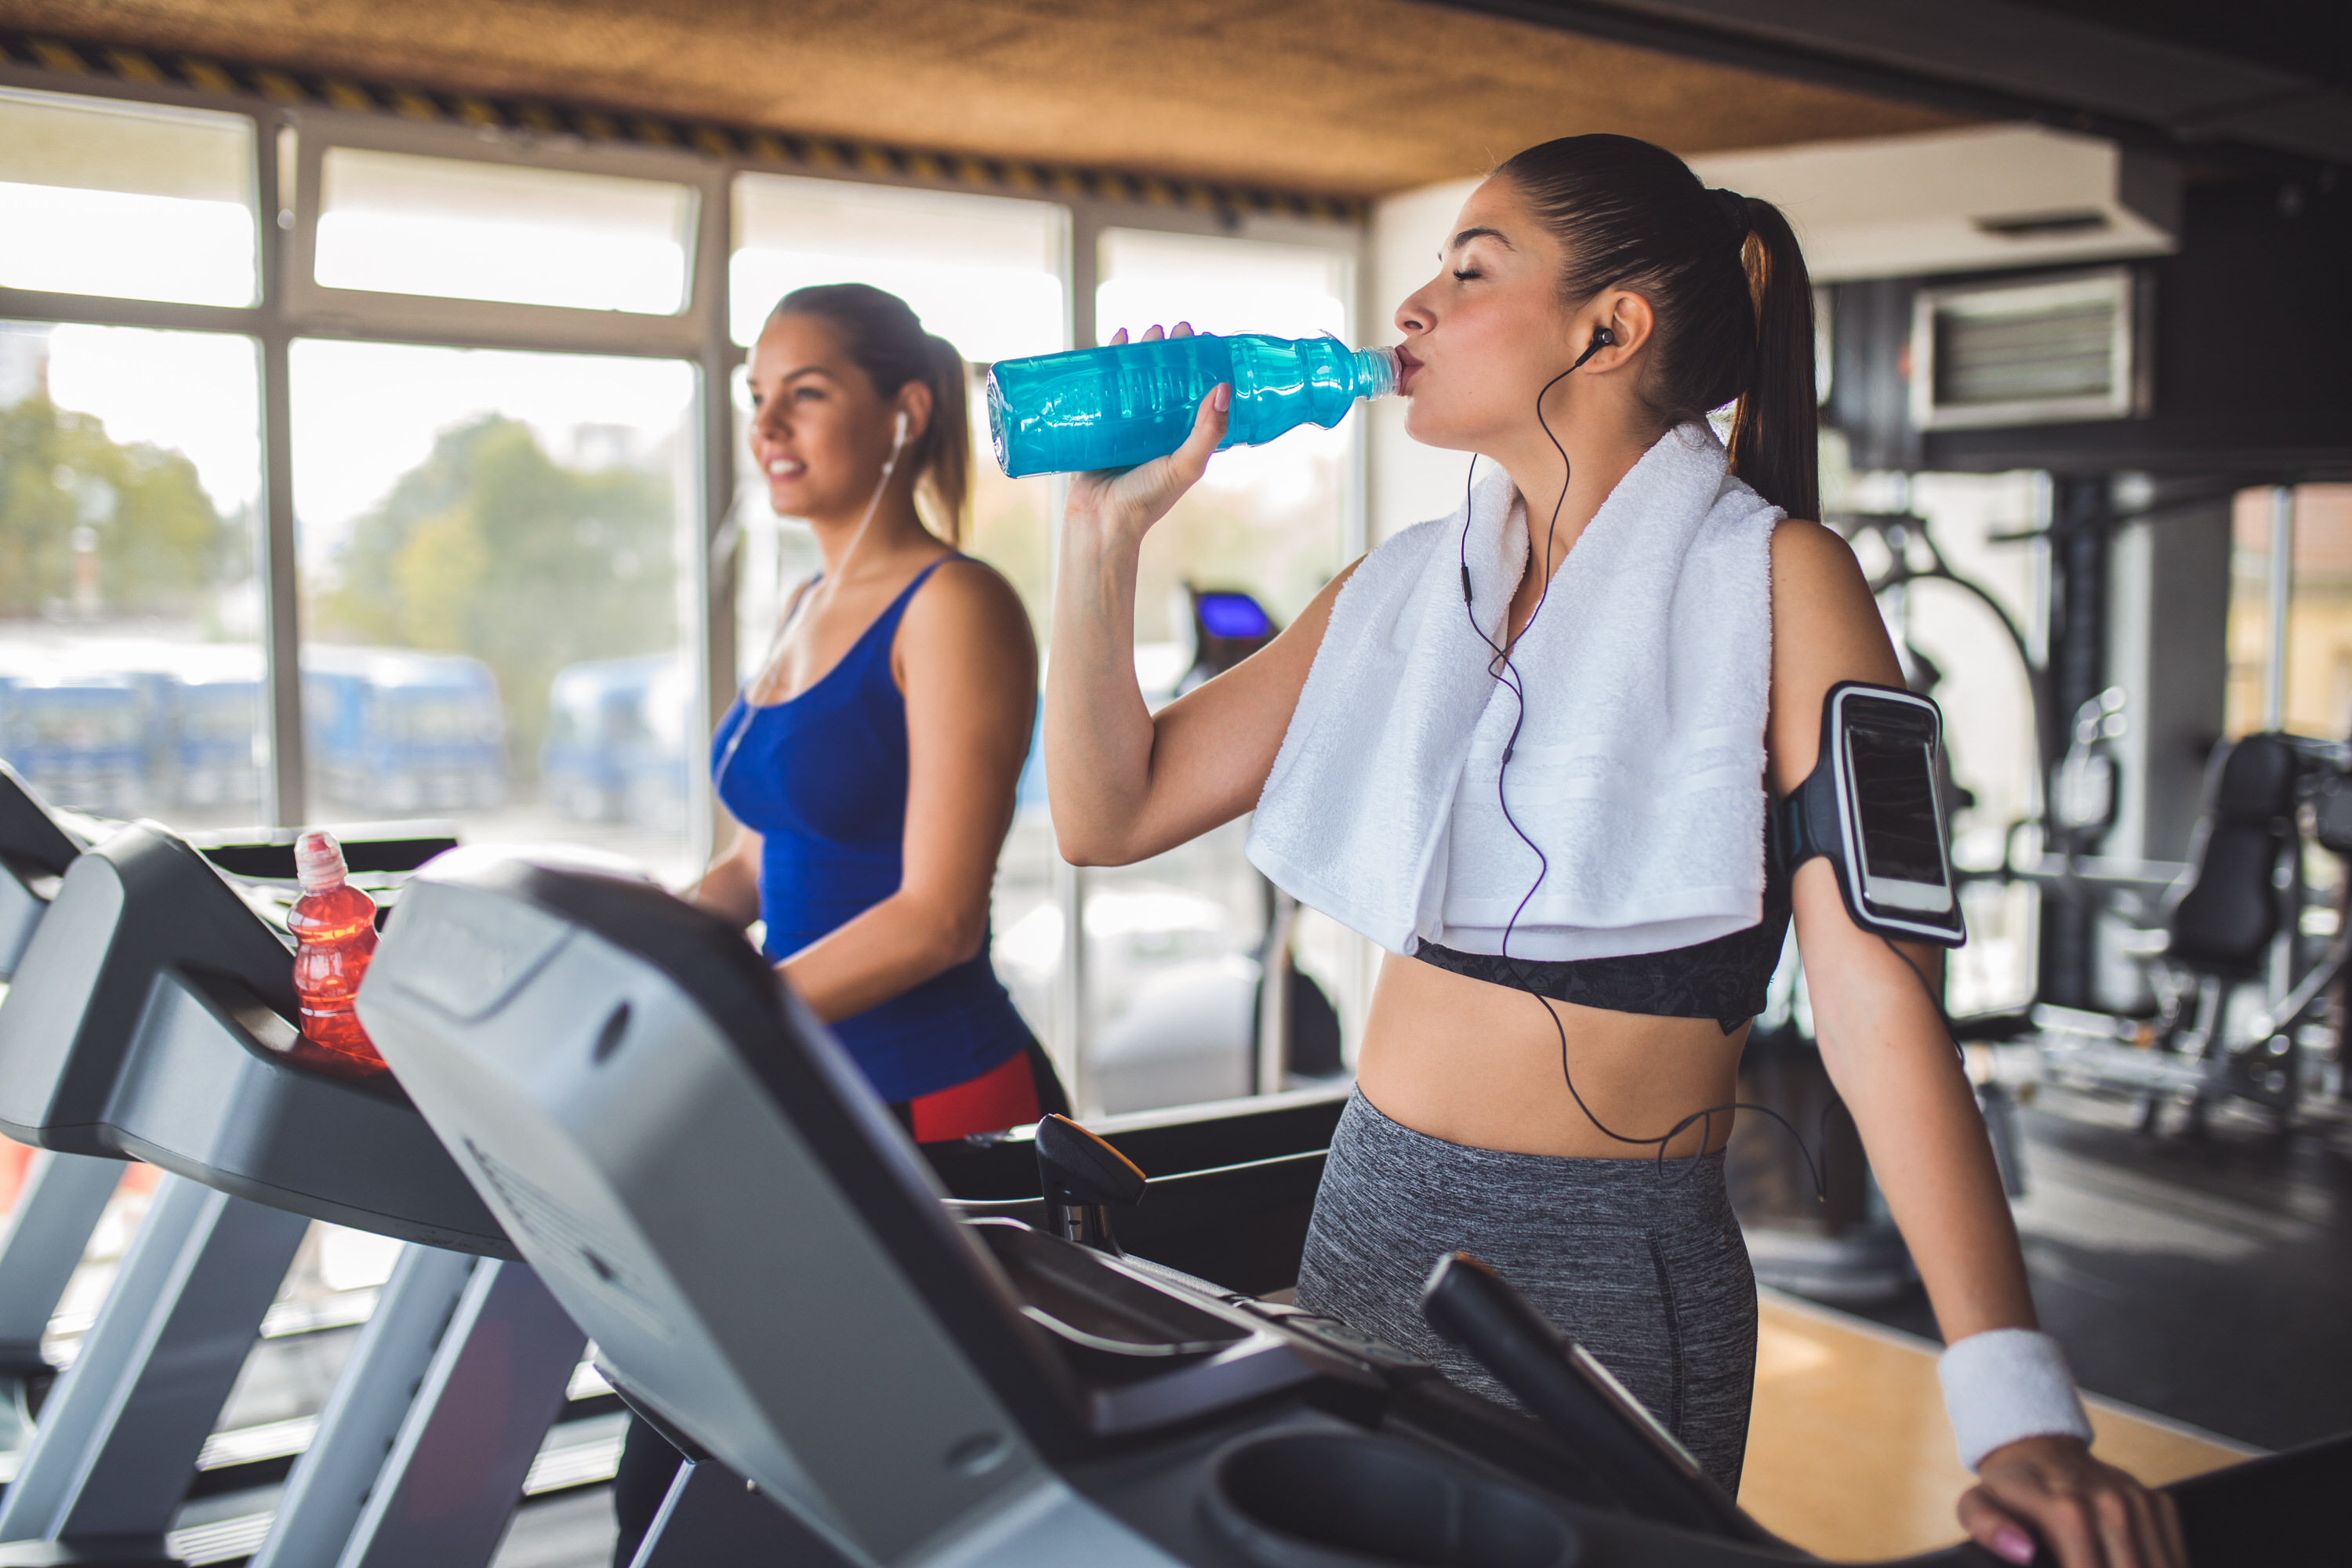 Young women drinking refreshment drink while exercising on treadmill